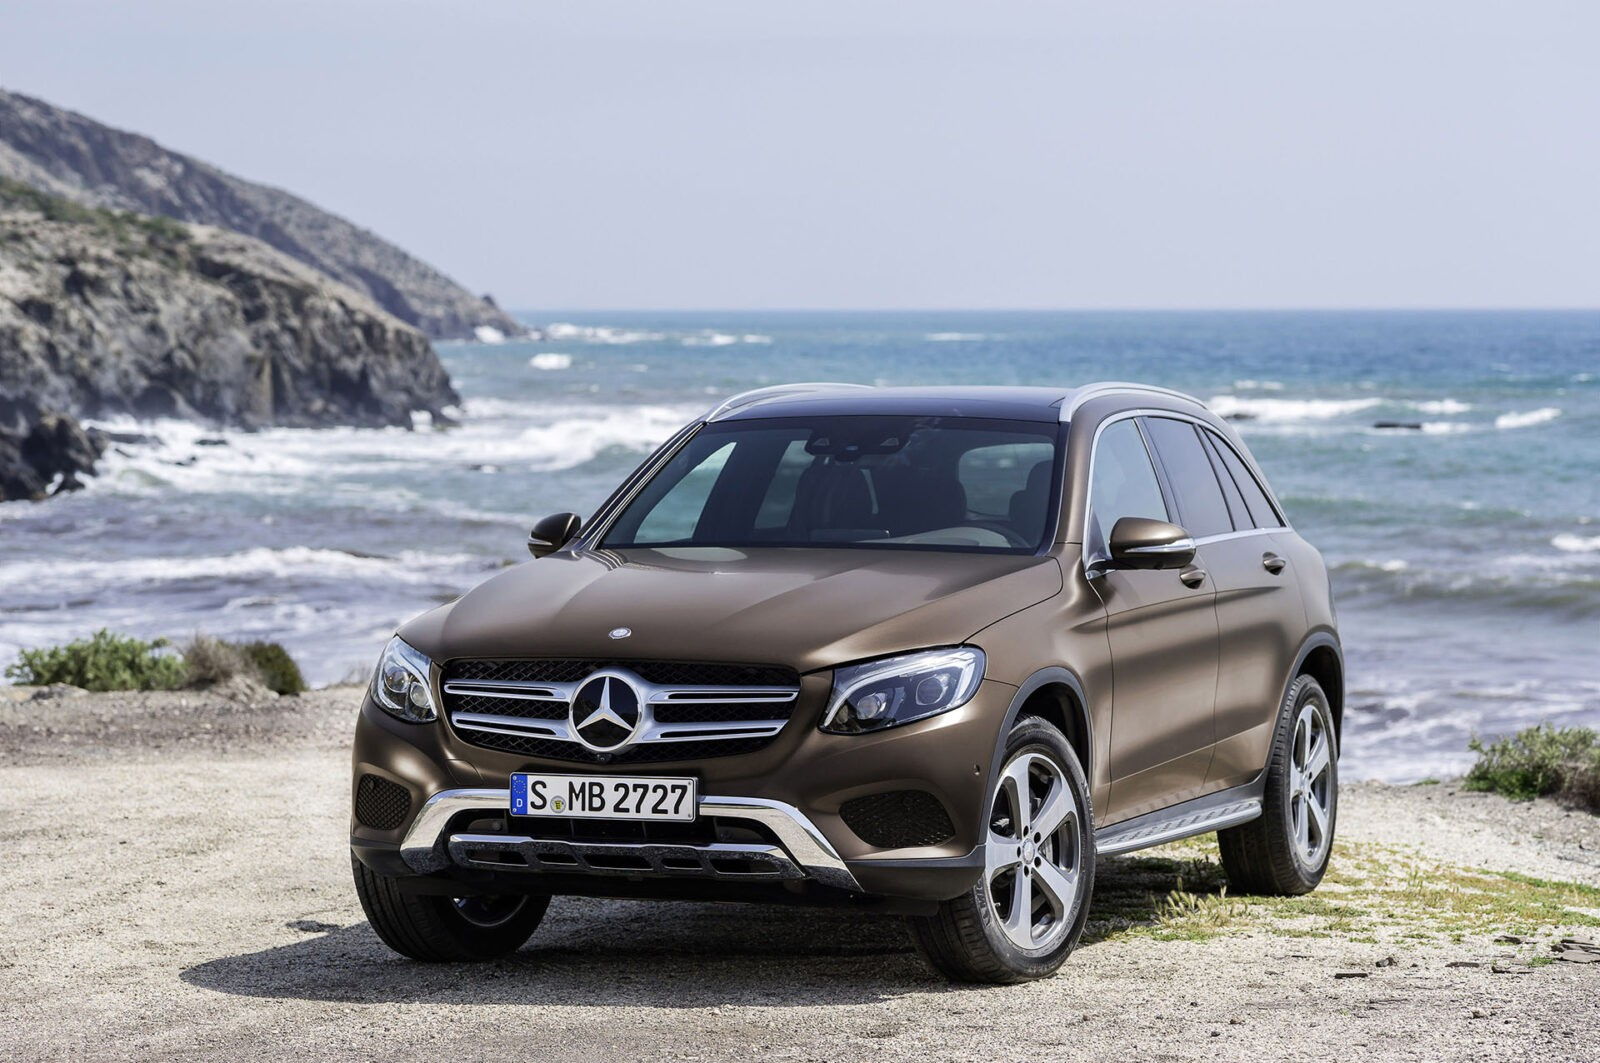 21 mercedes benz glc 2015 hd wallpapers download for Mercedes benz glc